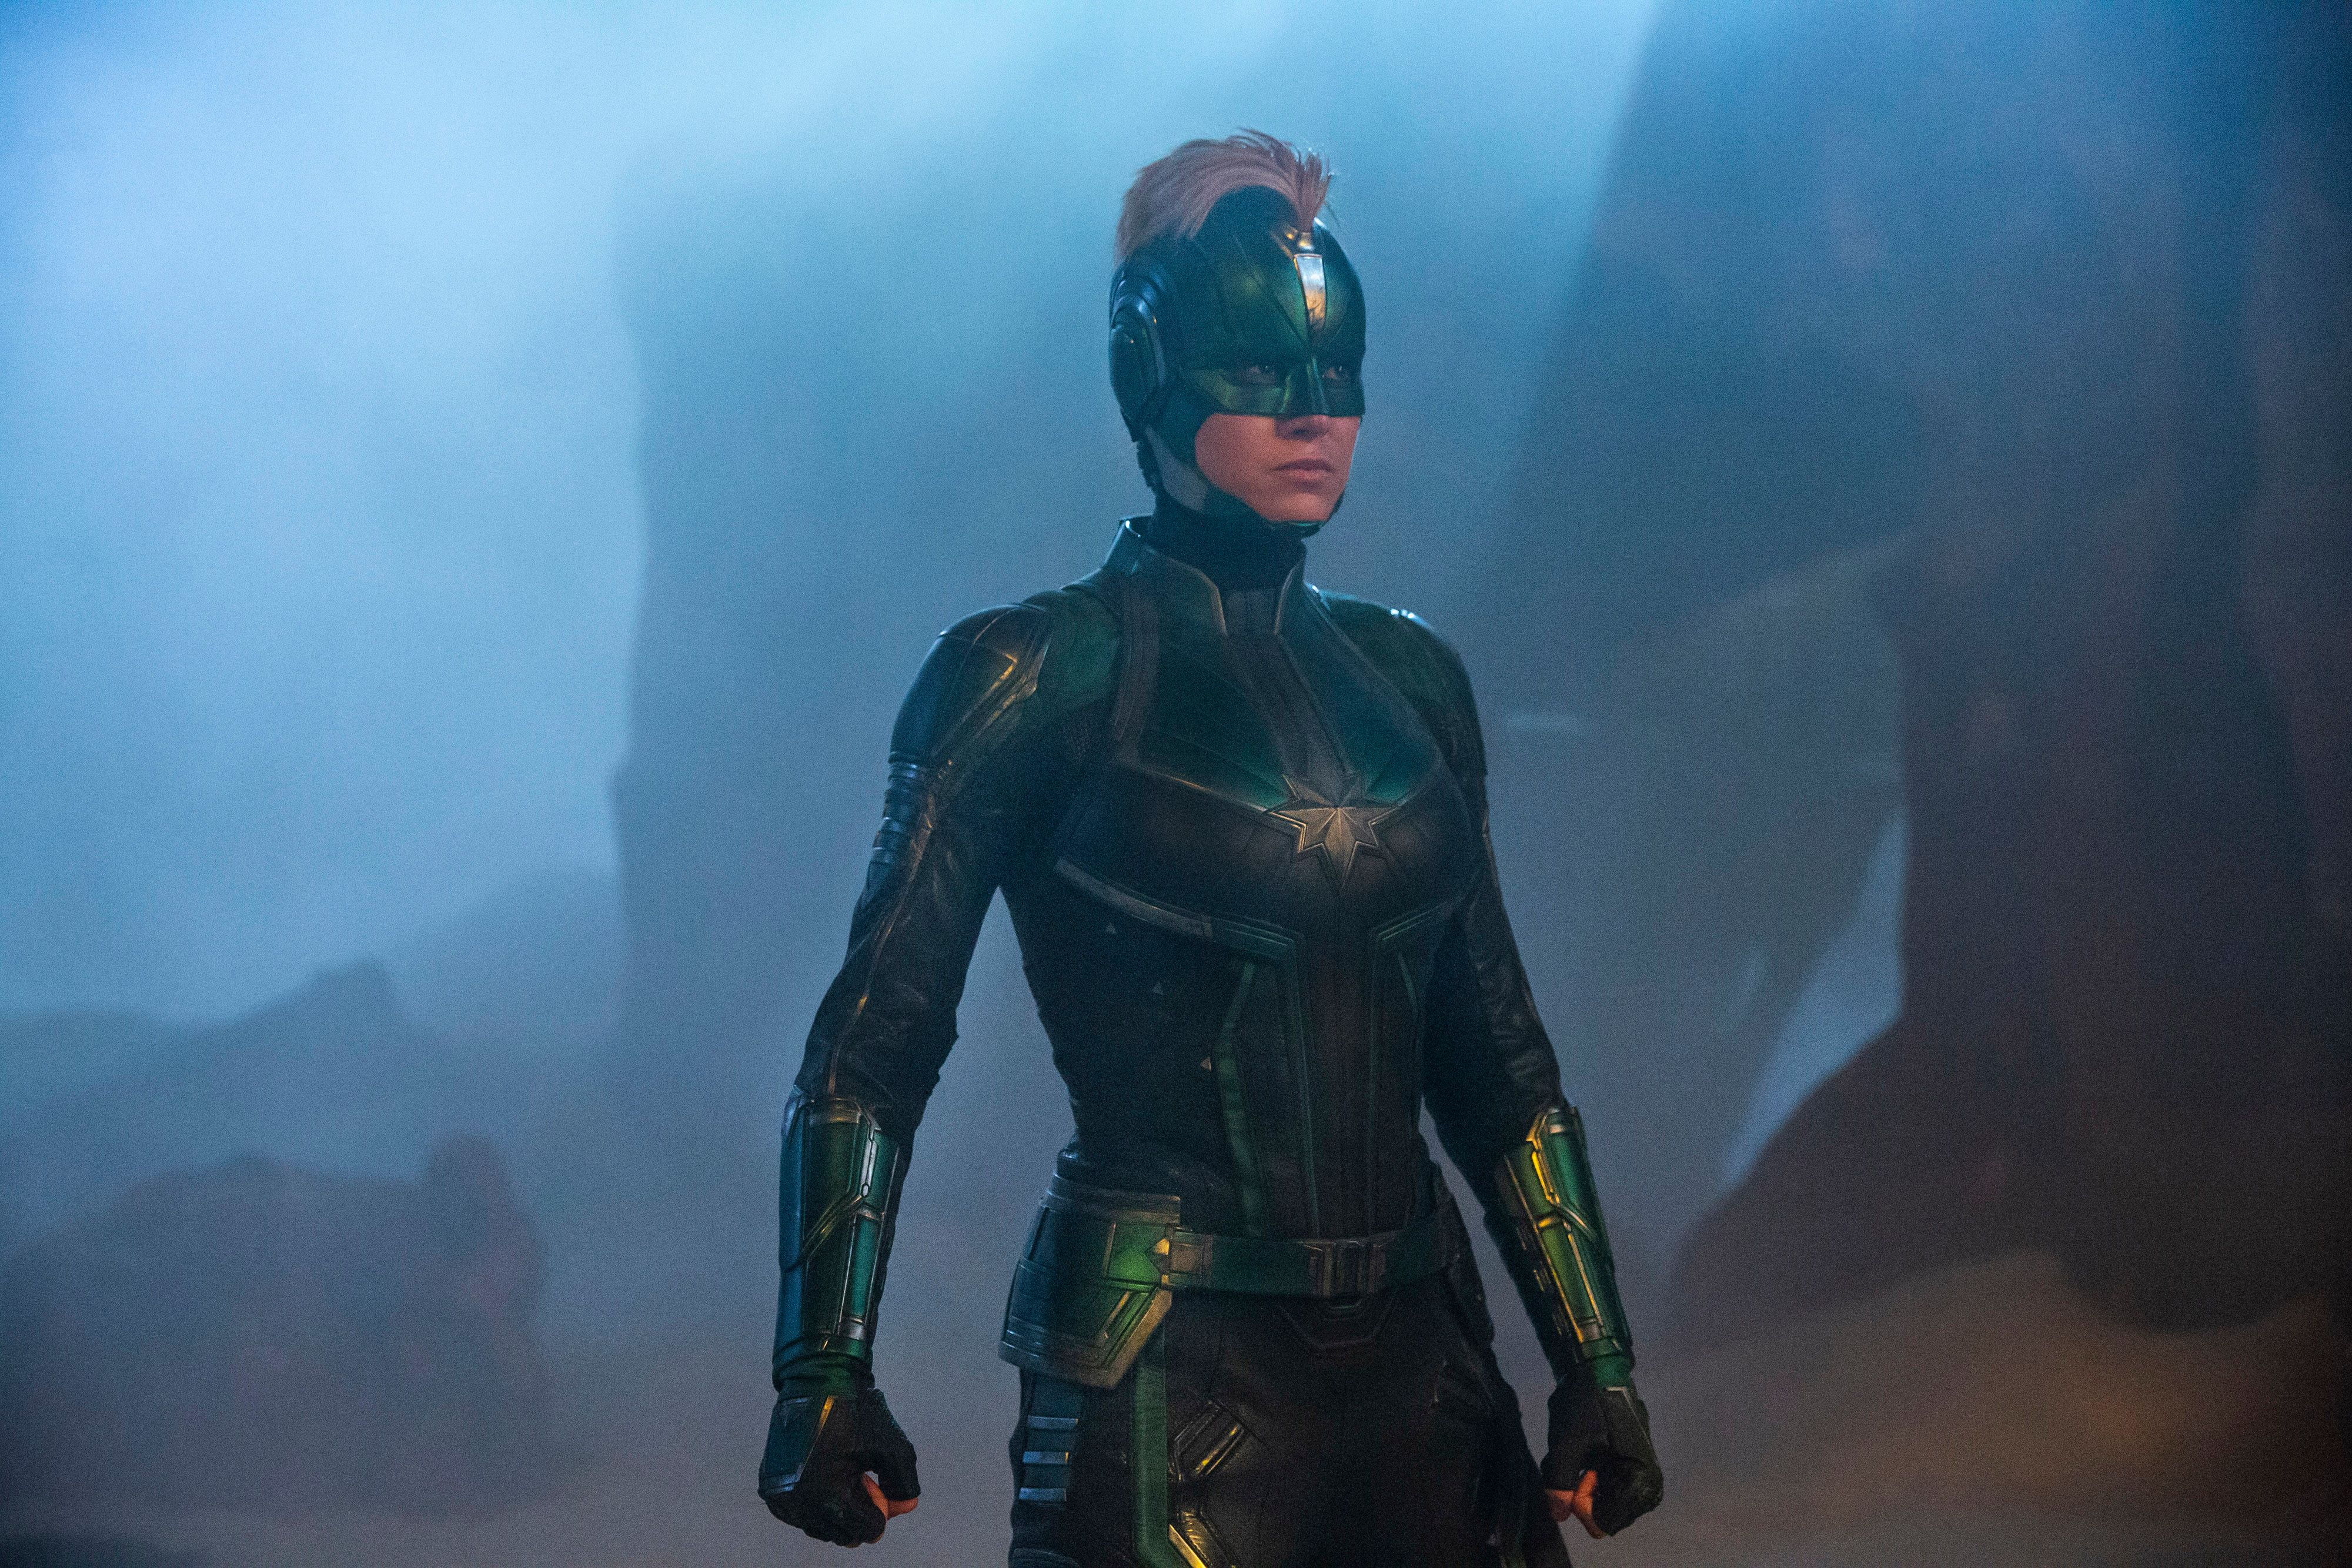 brie larson in captain marvel movie 2019 4k 1547507706 - Brie Larson In Captain Marvel Movie 2019 4k - movies wallpapers, hd-wallpapers, carol danvers wallpapers, captain marvel wallpapers, captain marvel movie wallpapers, brie larson wallpapers, 4k-wallpapers, 2019 movies wallpapers